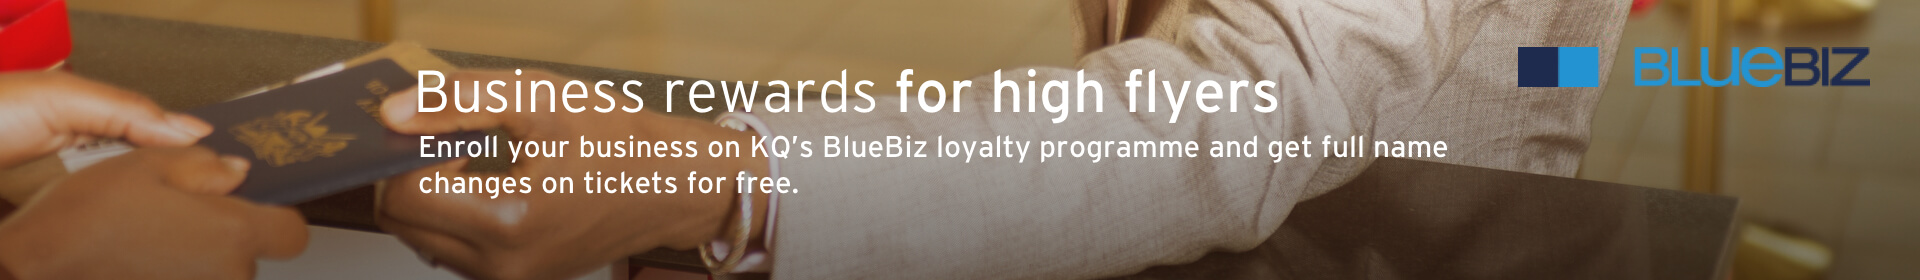 Register for Blue Biz Loyalty Program - Kenya Airways